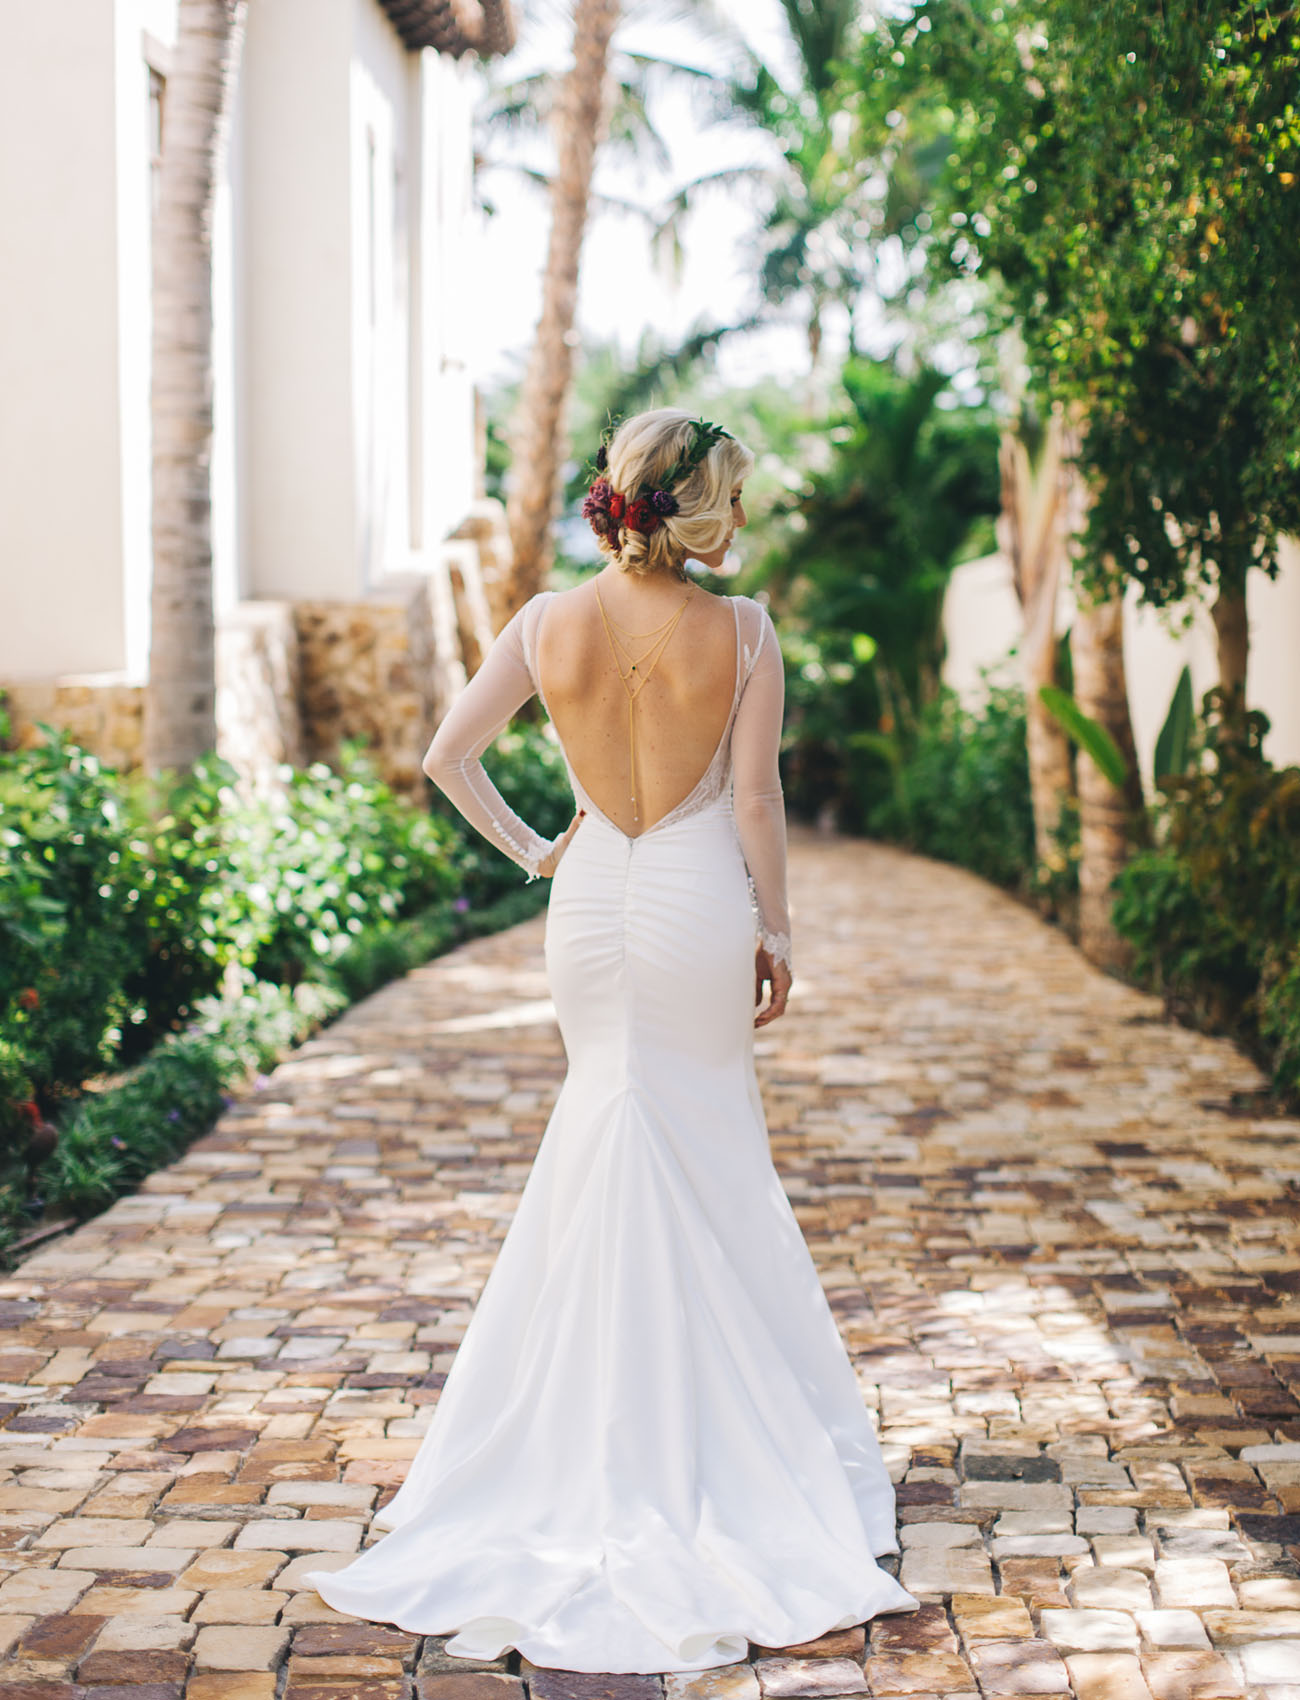 Simple Yet Stunning Wedding Dresses : Desert chic mexico wedding hayley duke green shoes